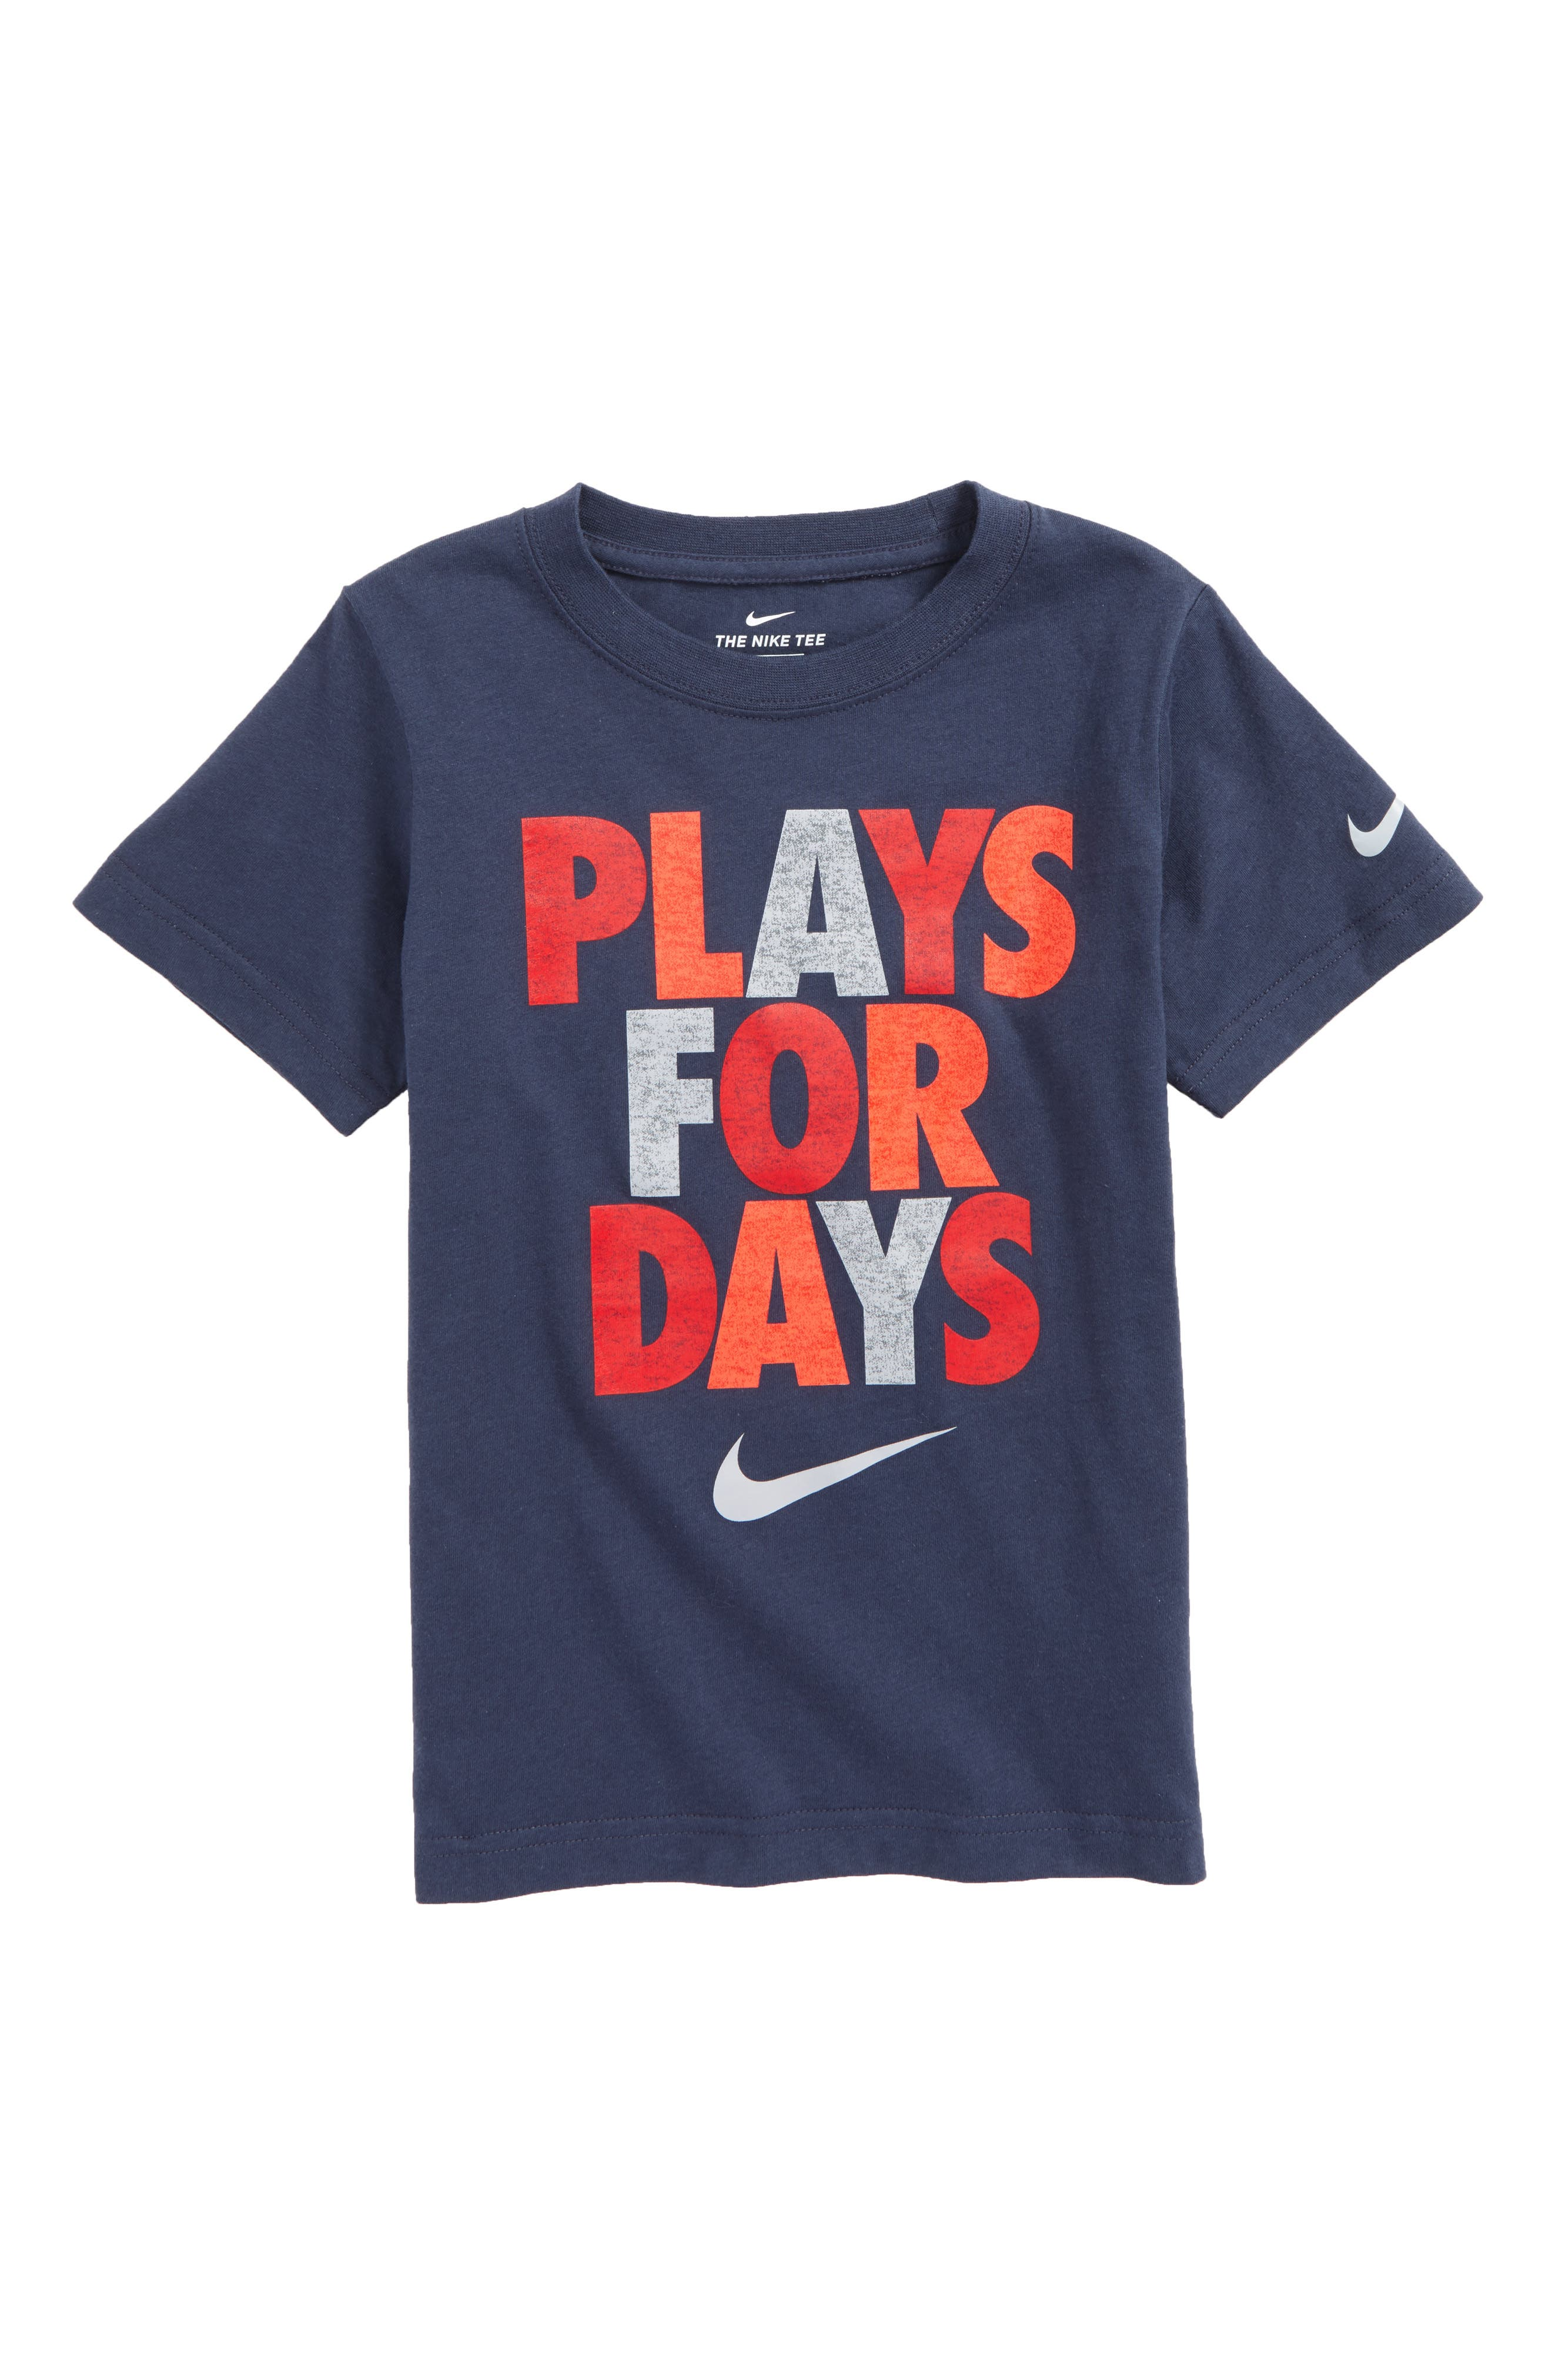 Plays for Days Graphic T-Shirt,                         Main,                         color, Thunder Blue